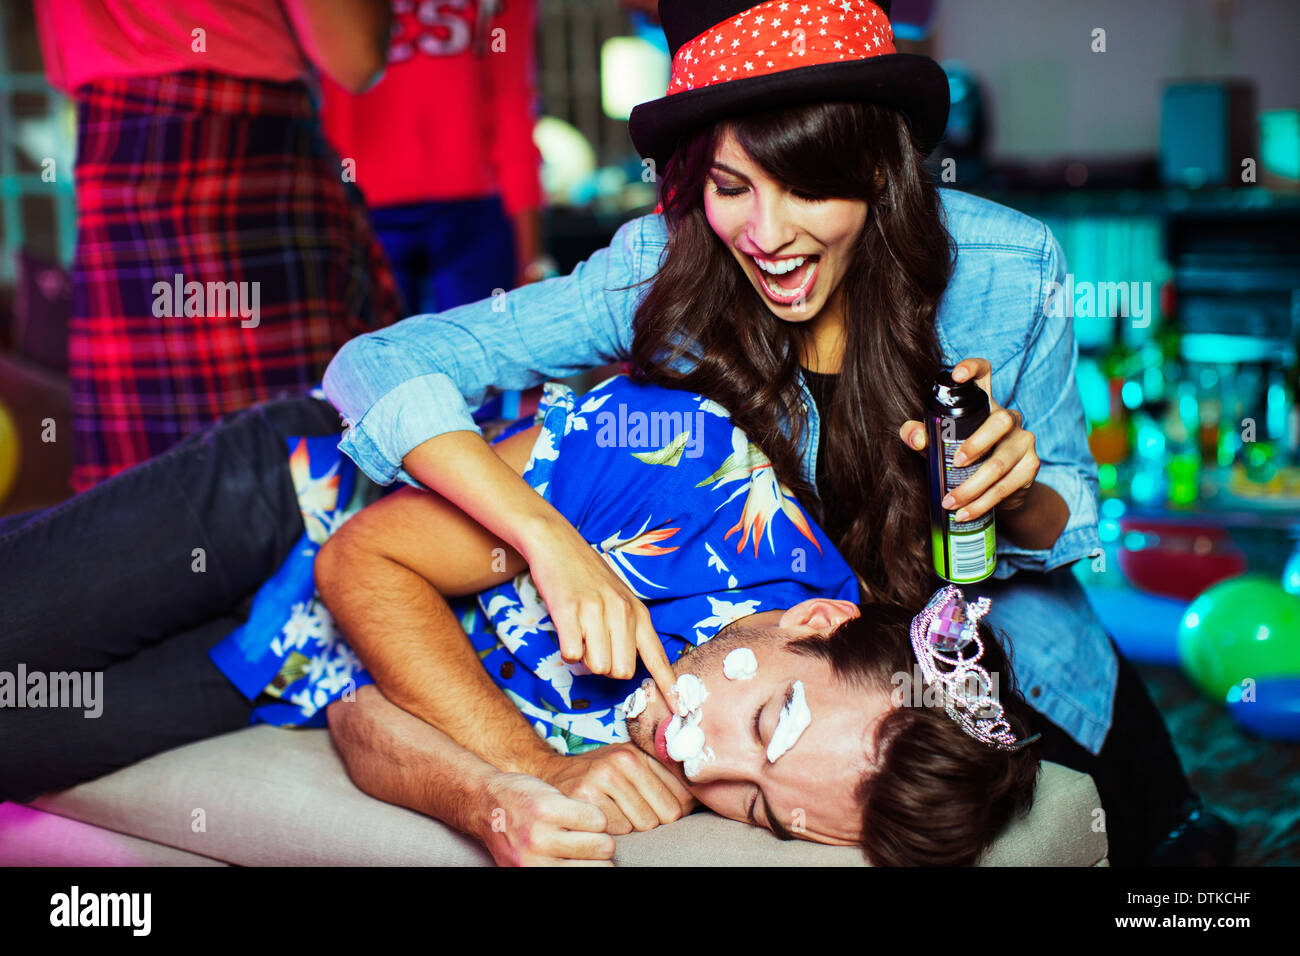 Woman spraying shaving cream on sleeping man's face at party - Stock Image